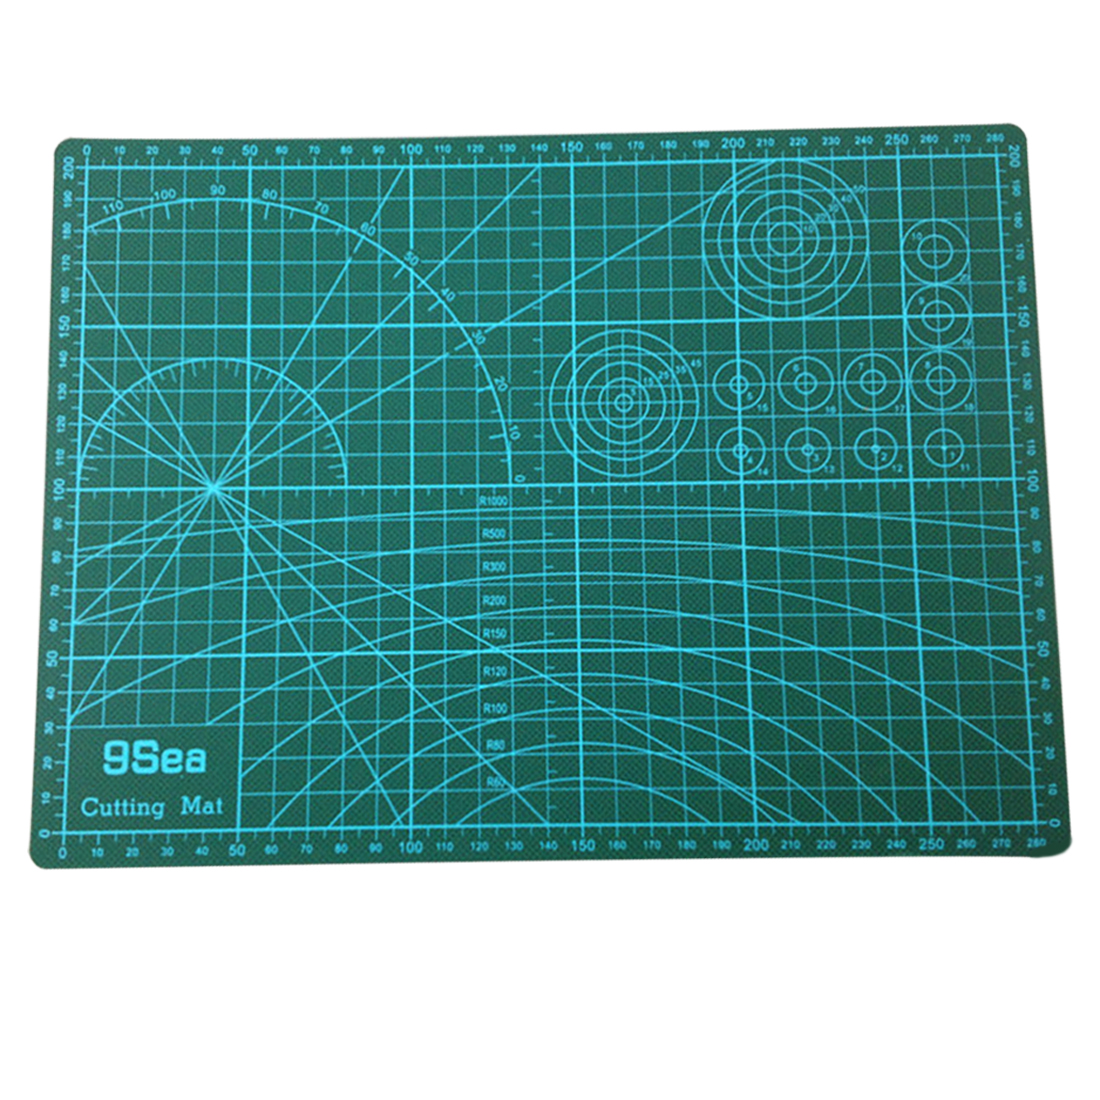 Wholesale A3 Or A2 Pvc Rectangle Grid Lines Self Healing Cutting Mat Tool Fabric Leather Paper Craft DIY Tools